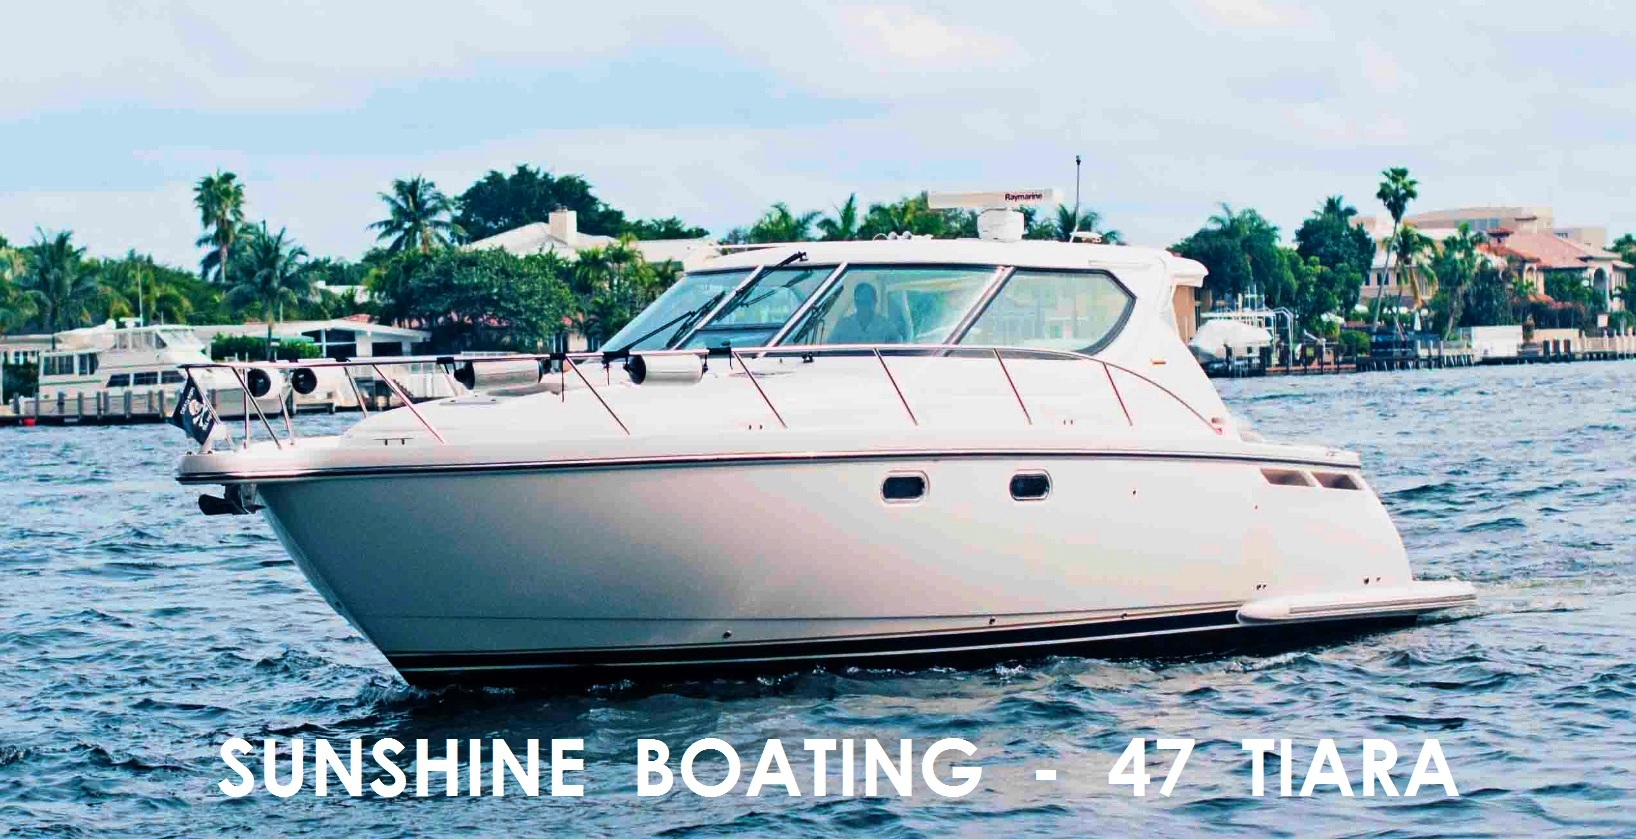 sunshine-boating-47-tiara-5